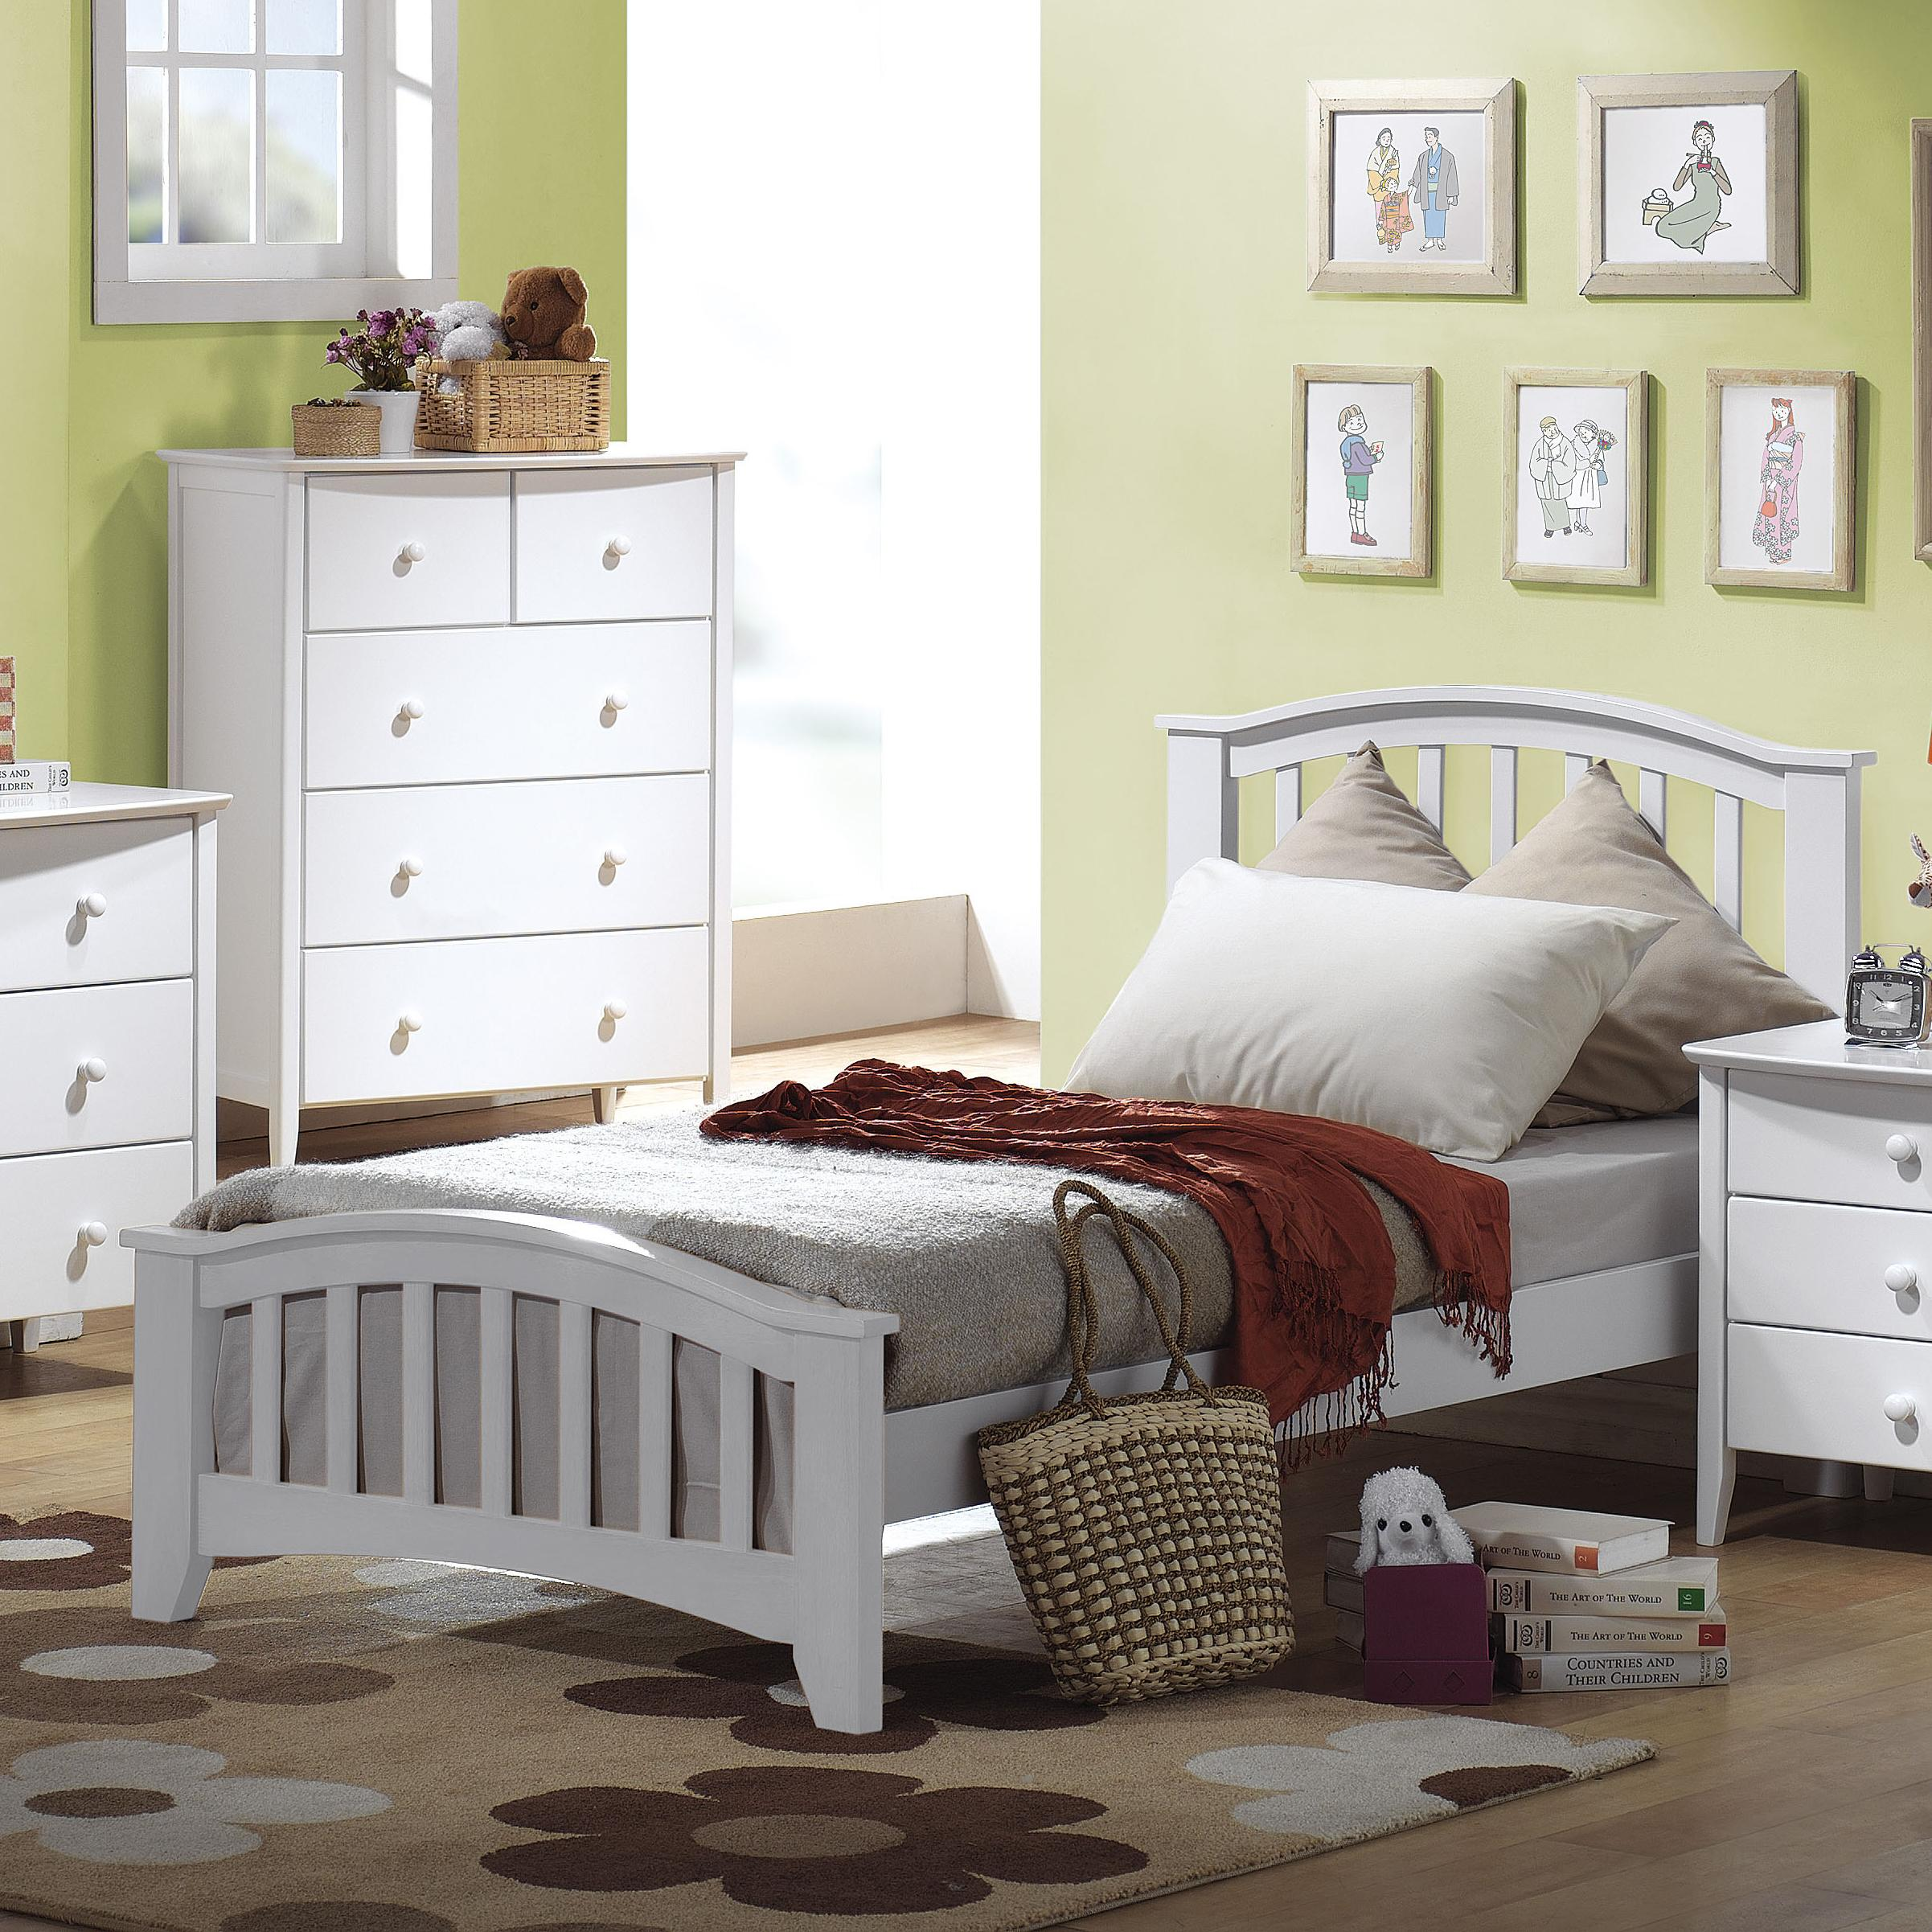 Acme Furniture San Marino Twin Slat Bed - Item Number: 9150T